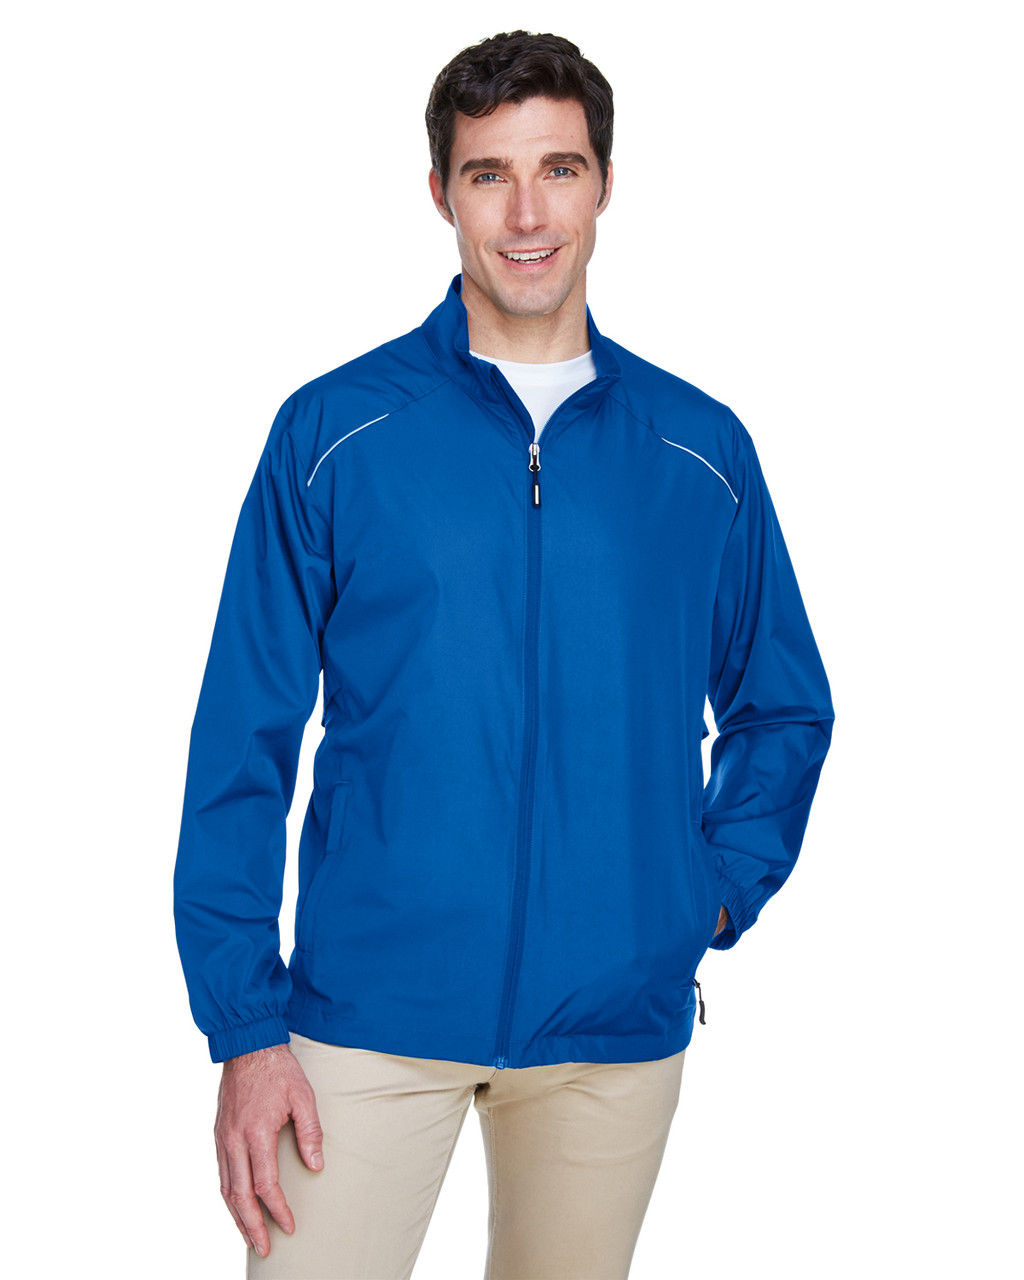 True Royal - 88183T Ash City - Core 365 Tall Motivate Unlined Lightweight Jacket | Blankclothing.ca